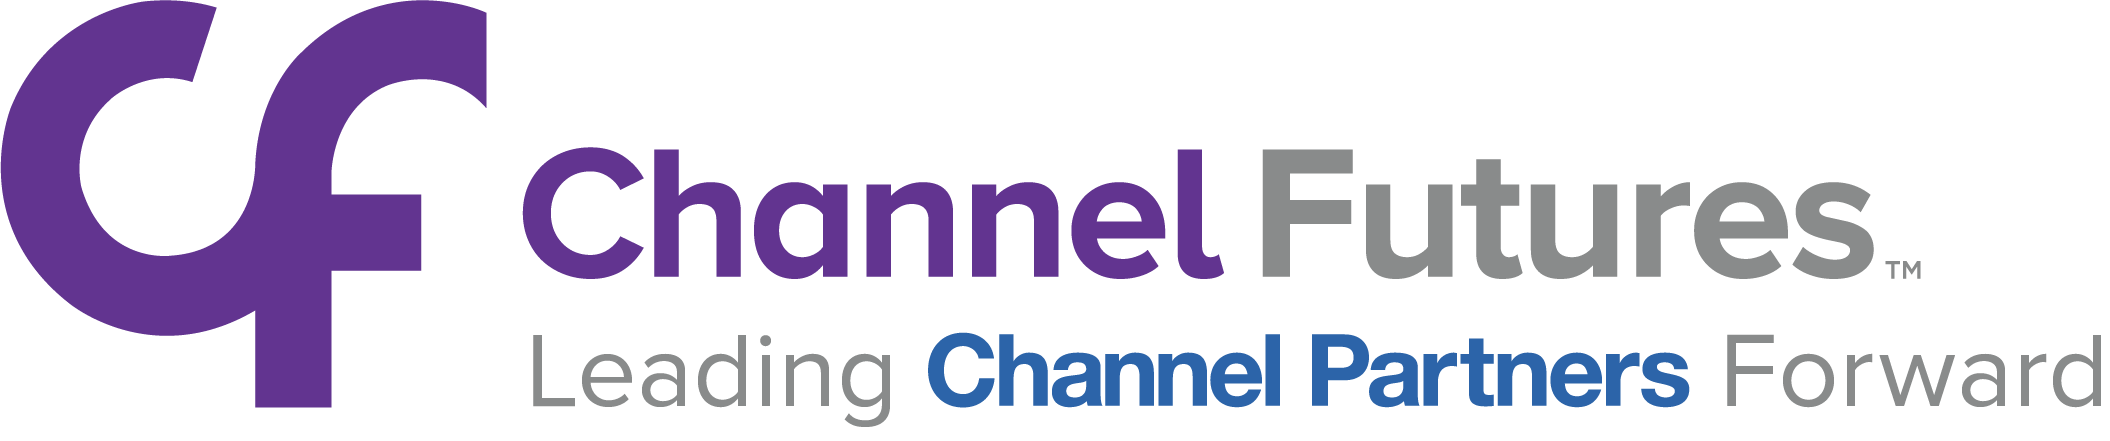 Channel Futures Leading Channel Partners Forward